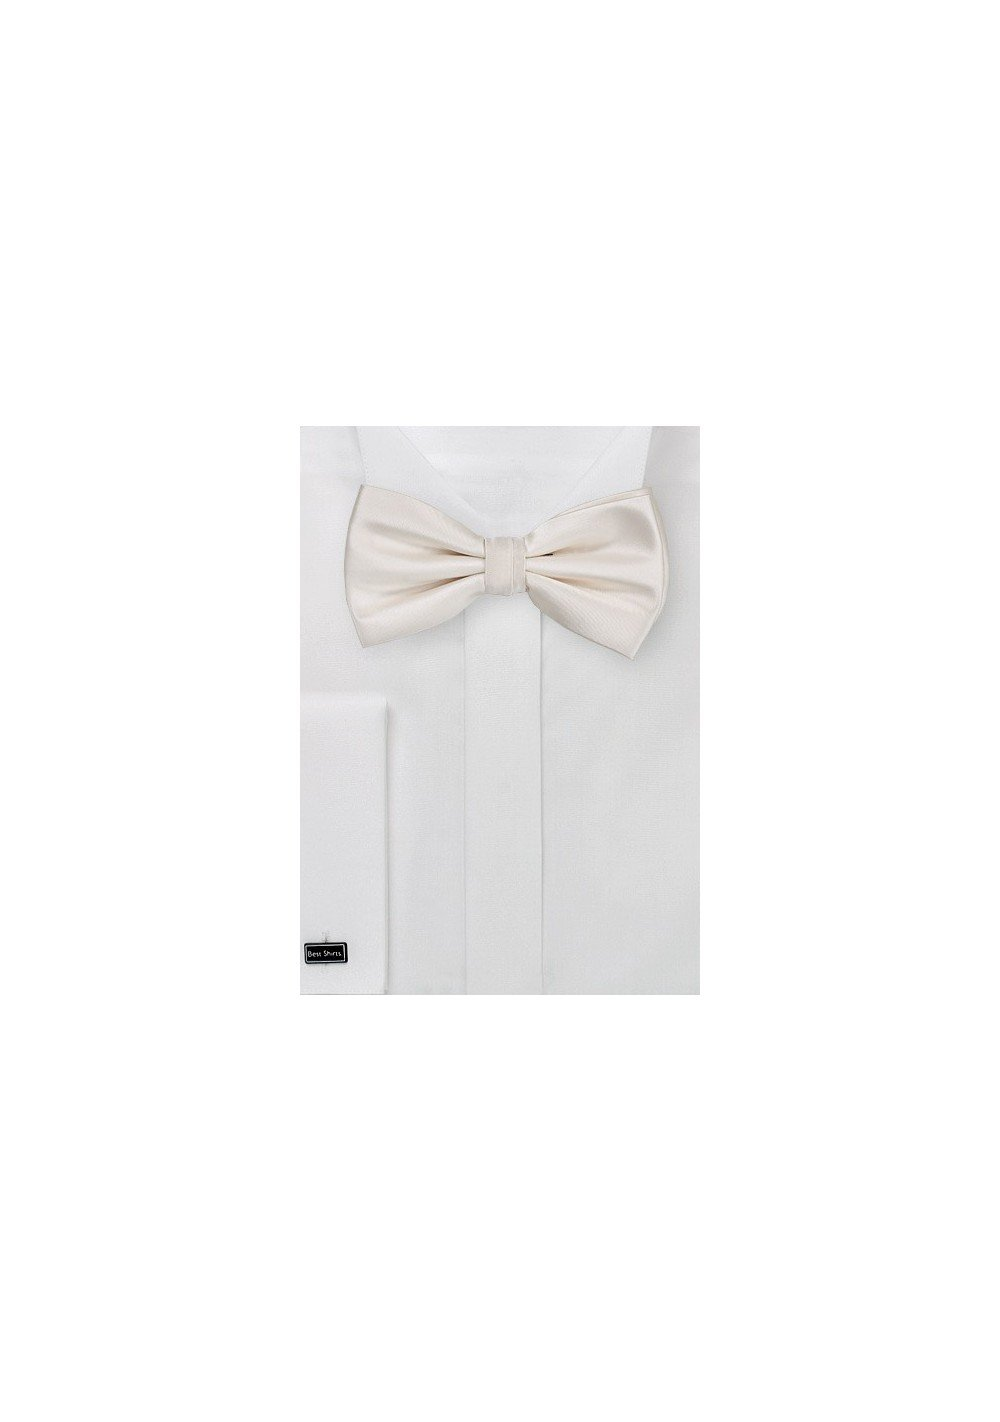 Ivory Colored Kids Bow Tie